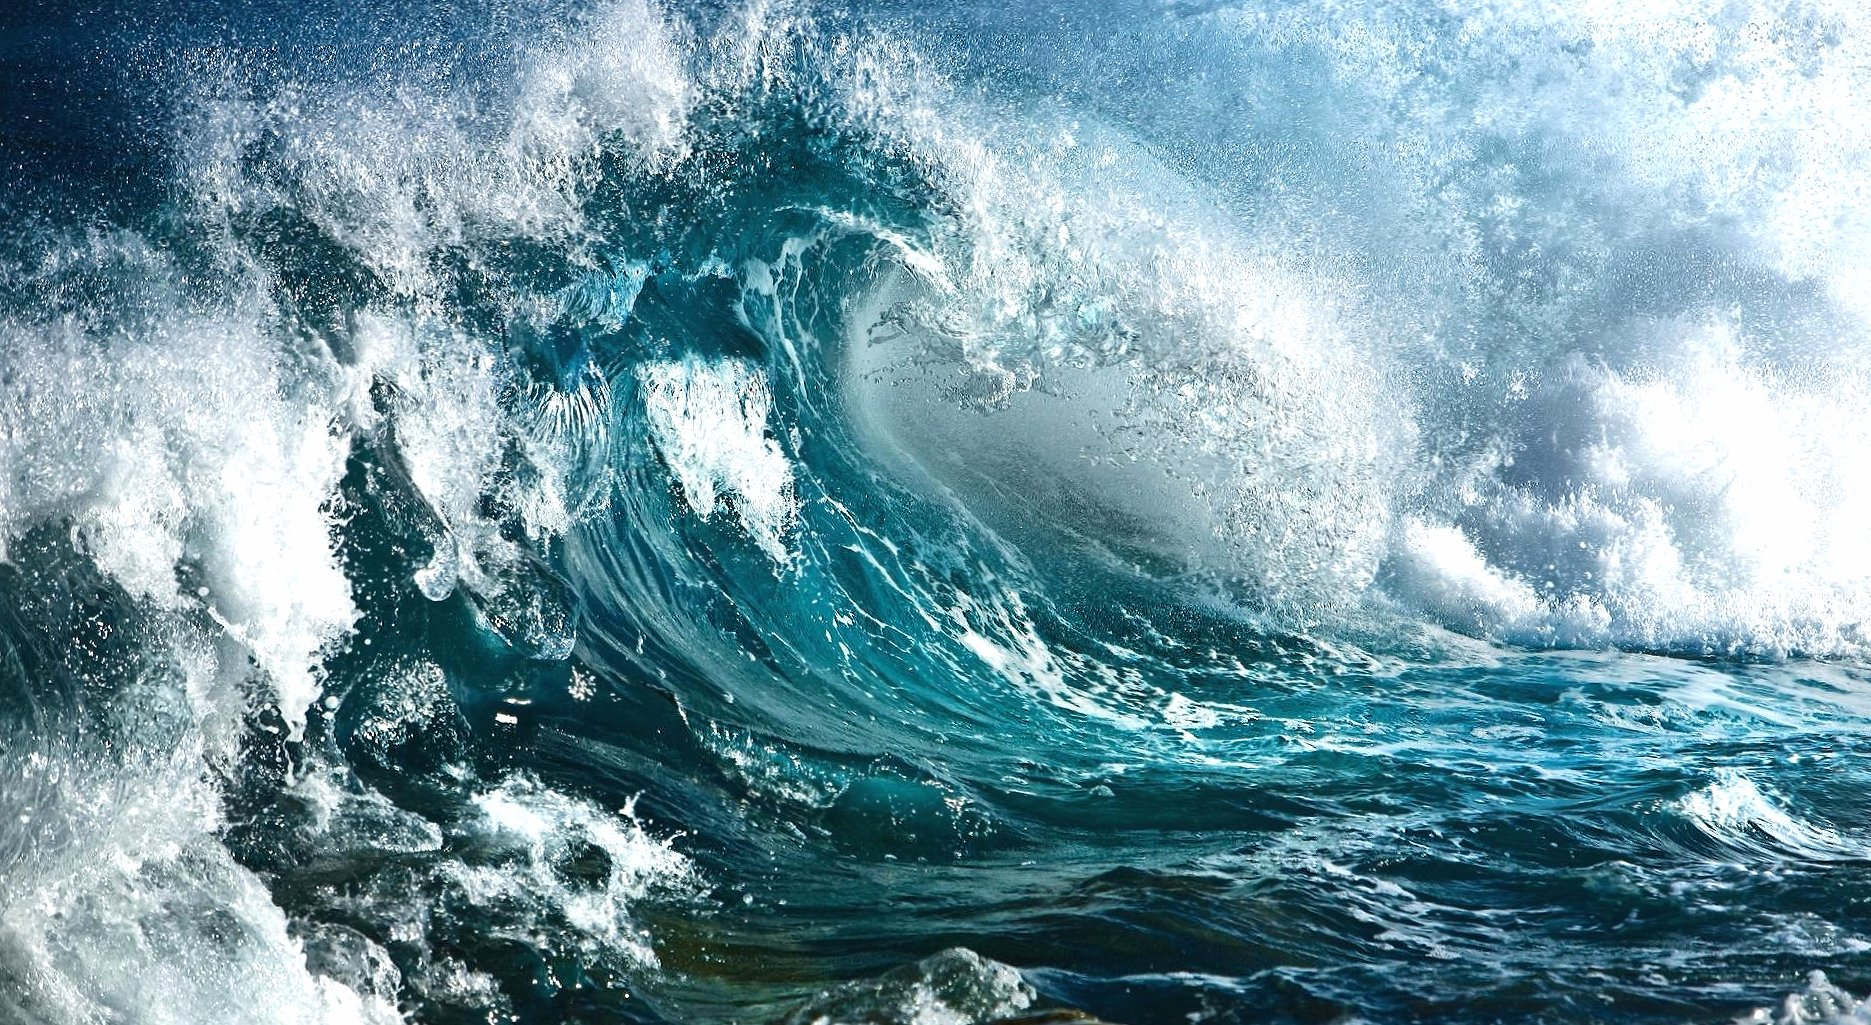 Huge wave wallpapers HD quality